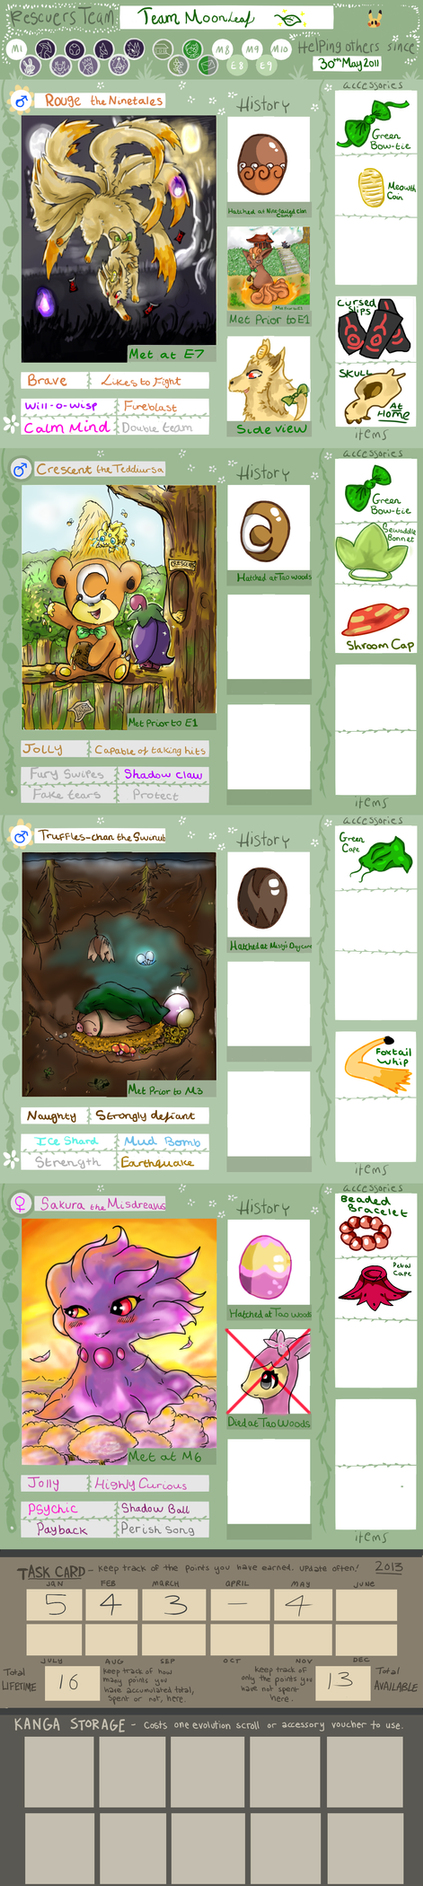 PMD-E Team Moonleaf App 2.0 by roryrrules123